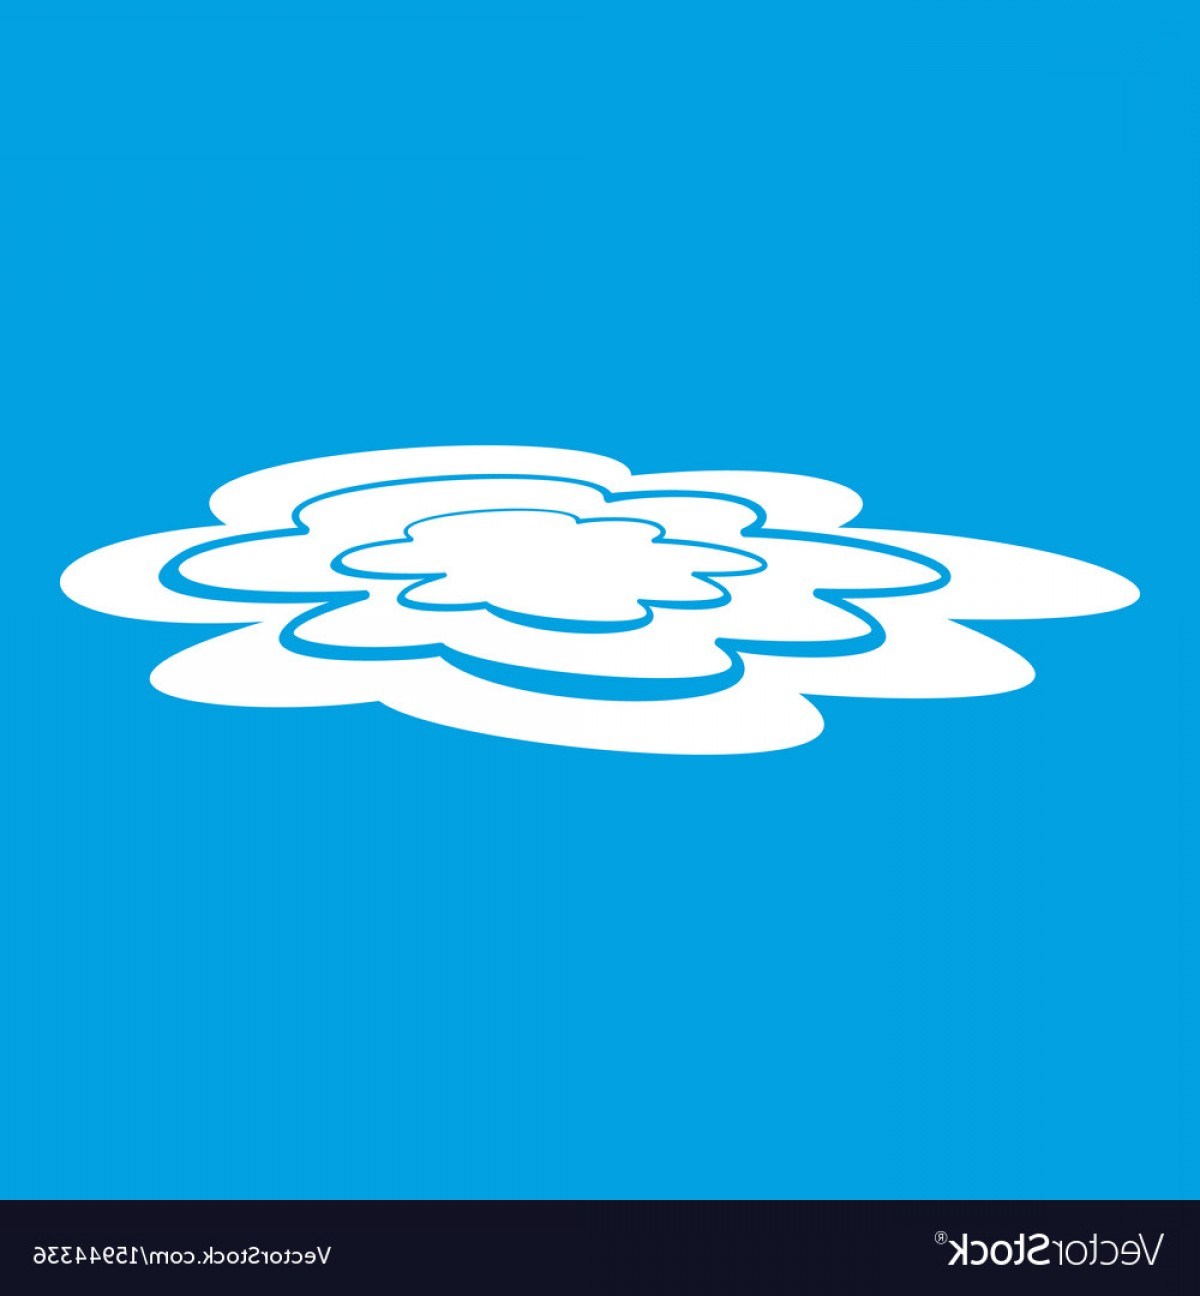 Puddle Of Water Vector: Water Puddle Icon White Vector